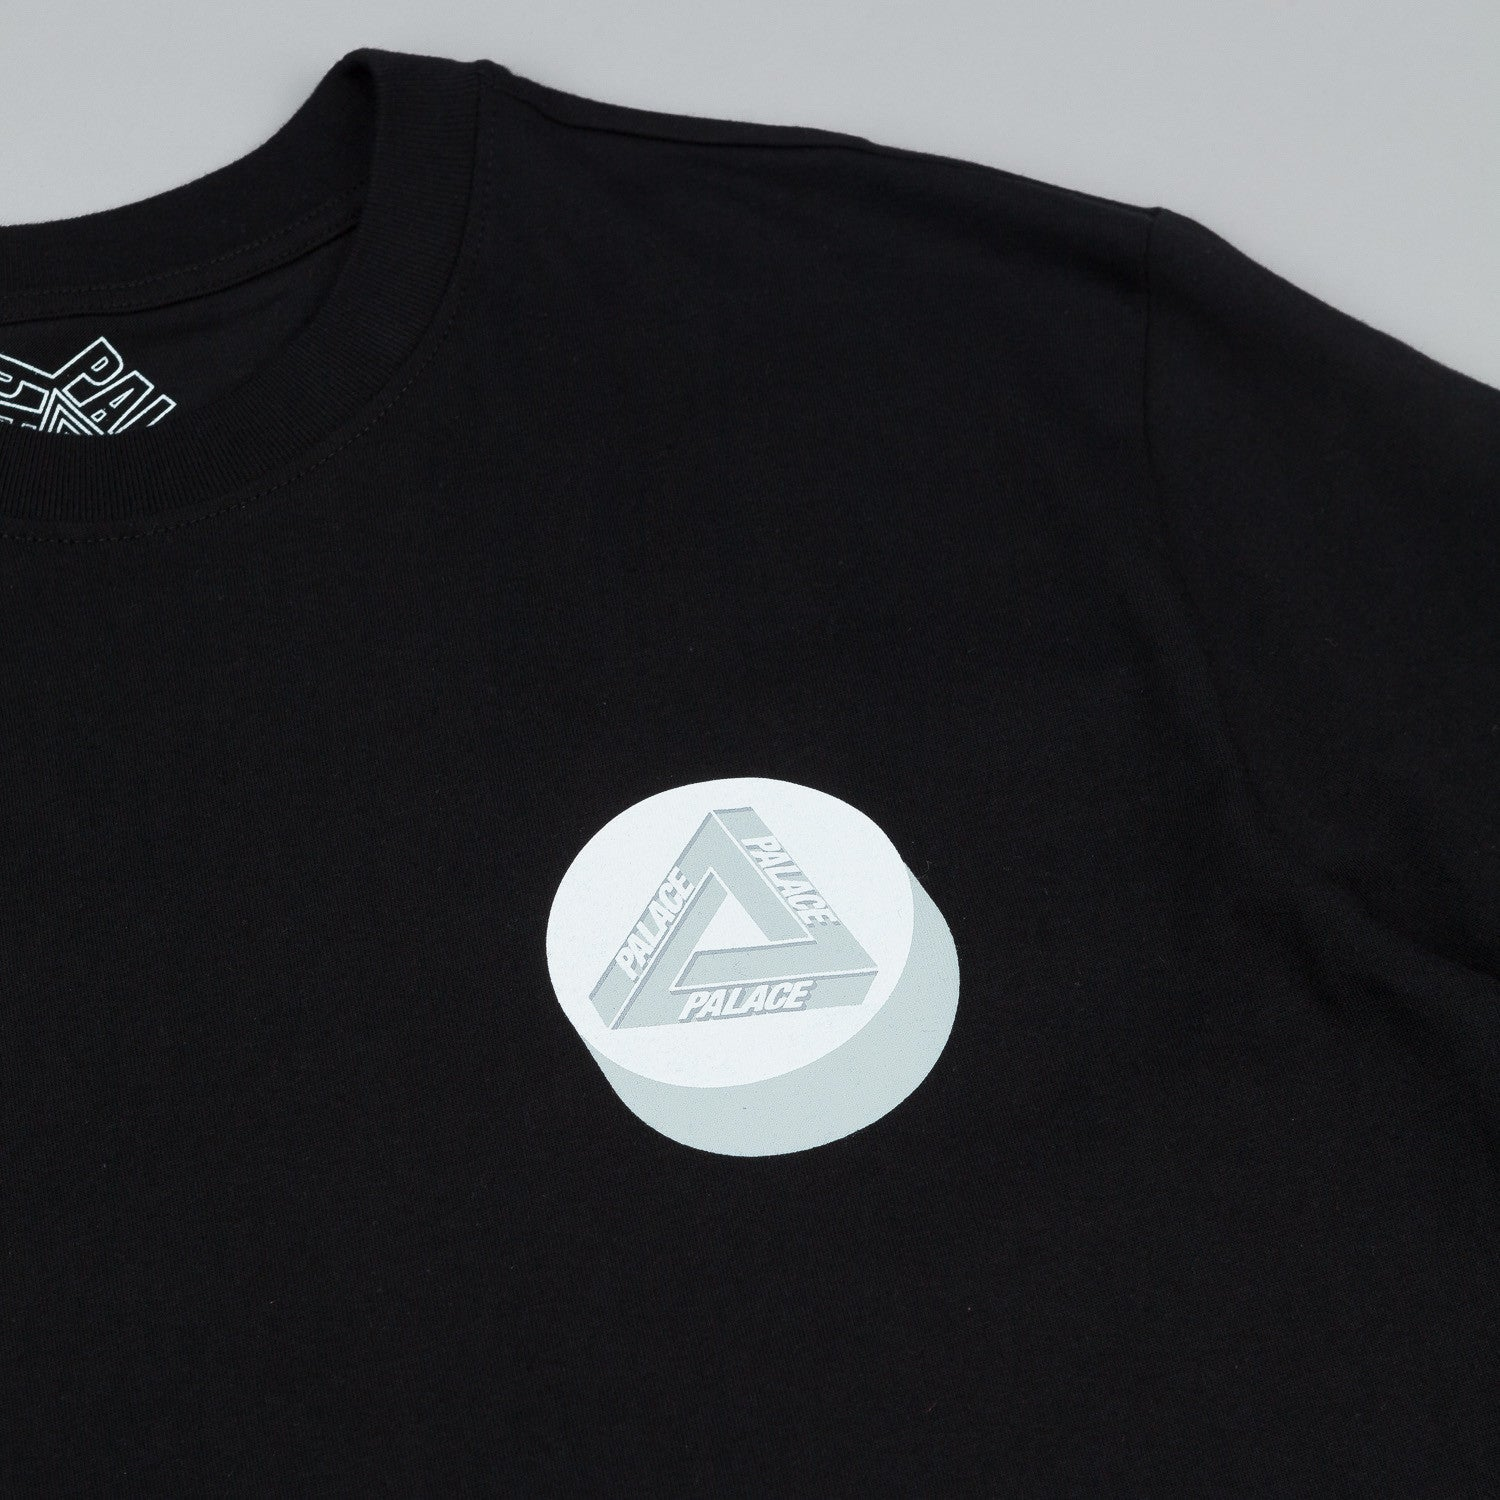 Palace Tablet T-Shirt - Black